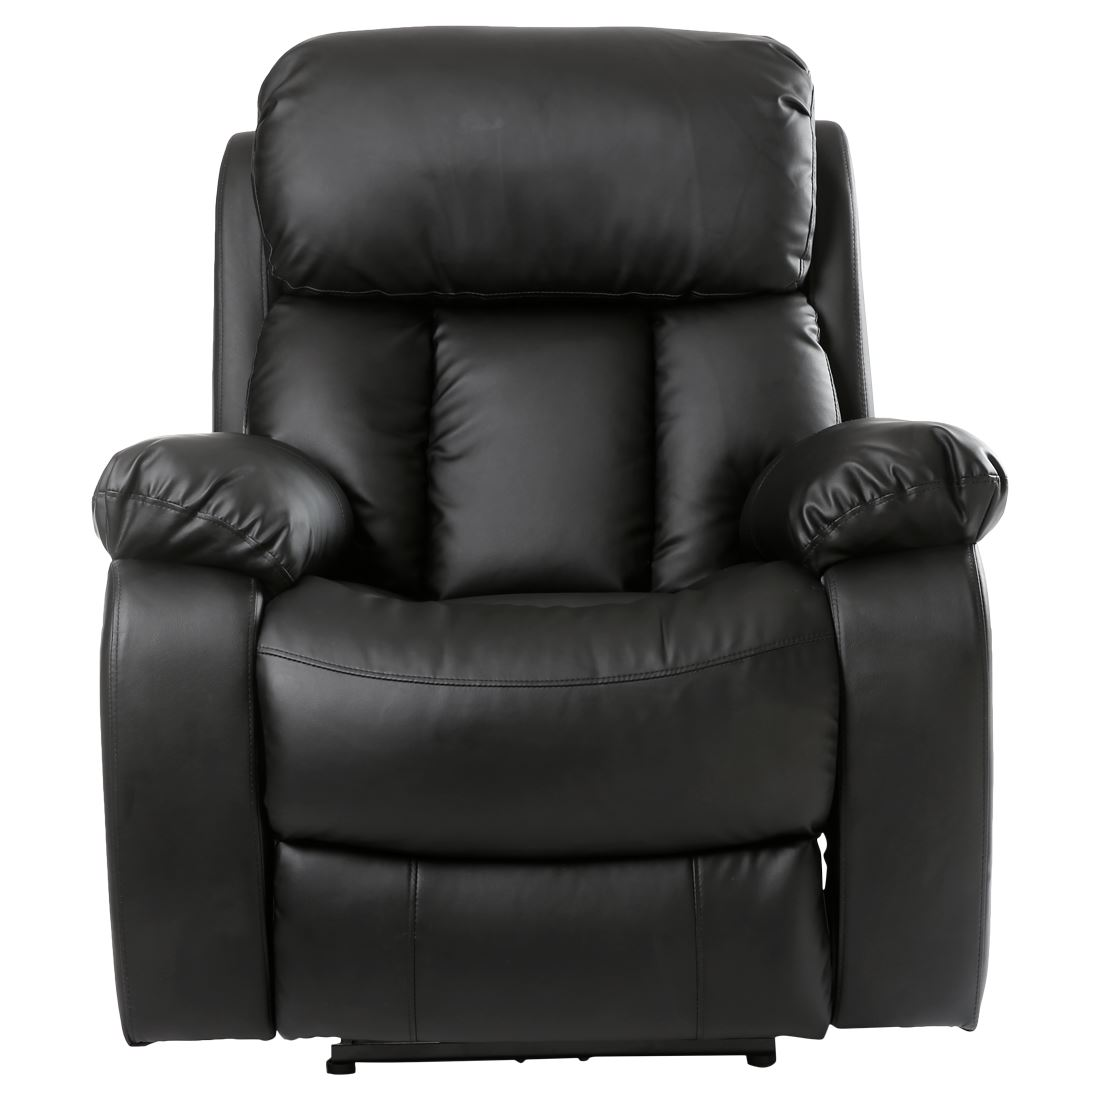 CHESTER-ELECTRIC-HEATED-LEATHER-MASSAGE-RECLINER-CHAIR-SOFA-GAMING-HOME-ARMCHAIR